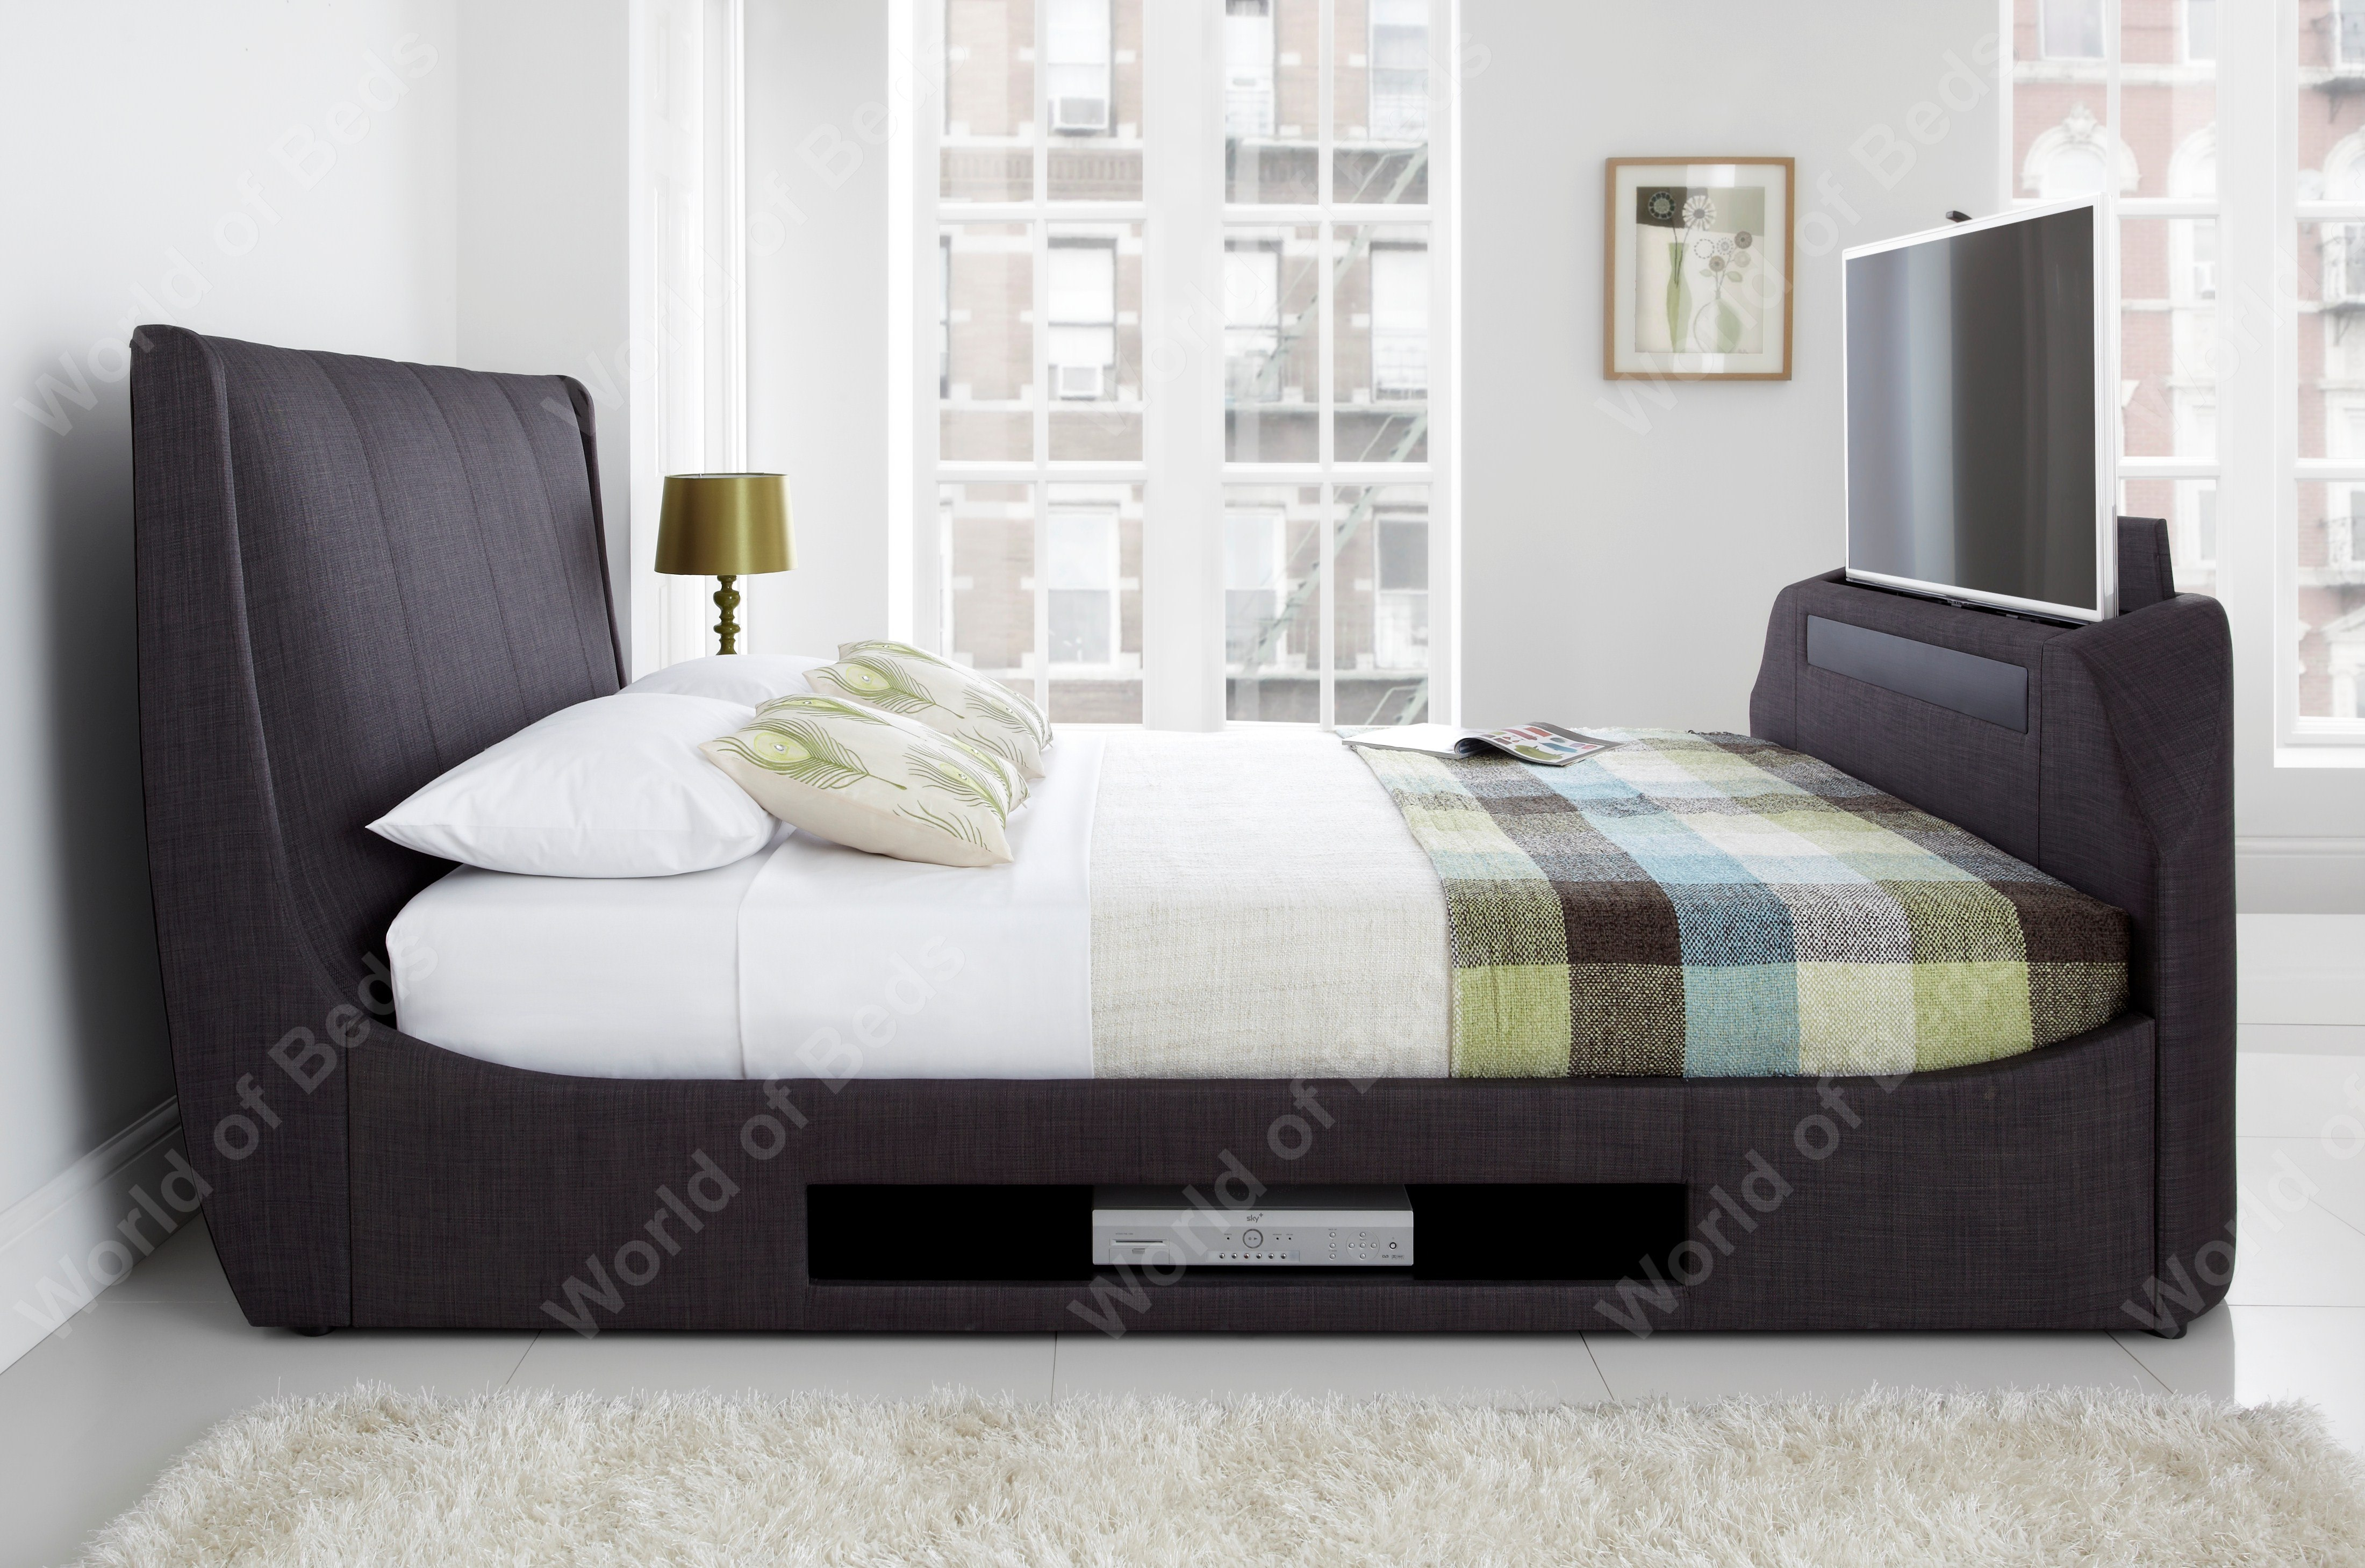 Kaydian Somner TV Bed & Sound Bar available from the world of beds, doncaster